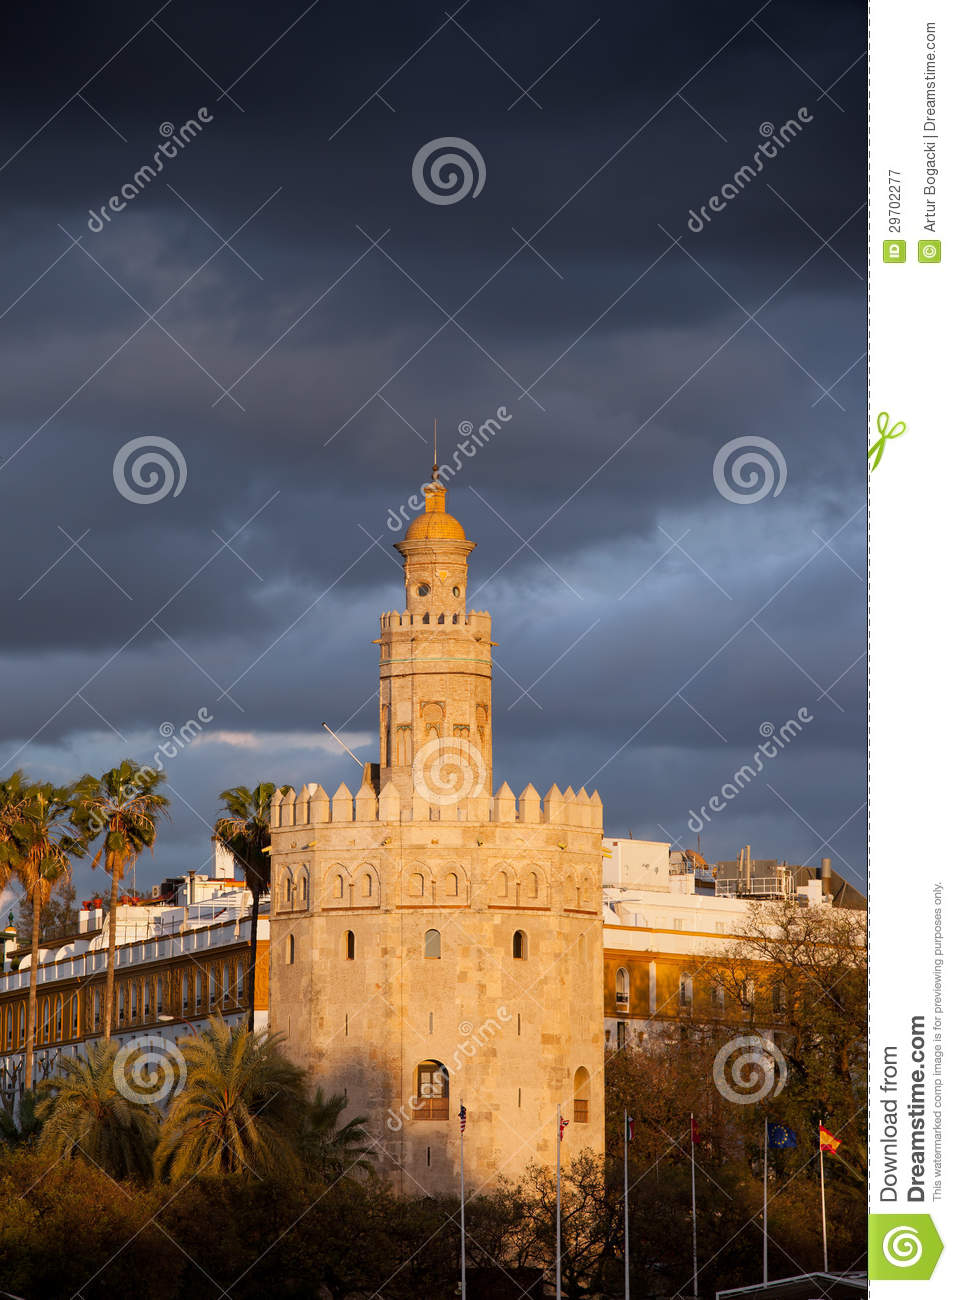 Torre del Oro at Sunset in Seville